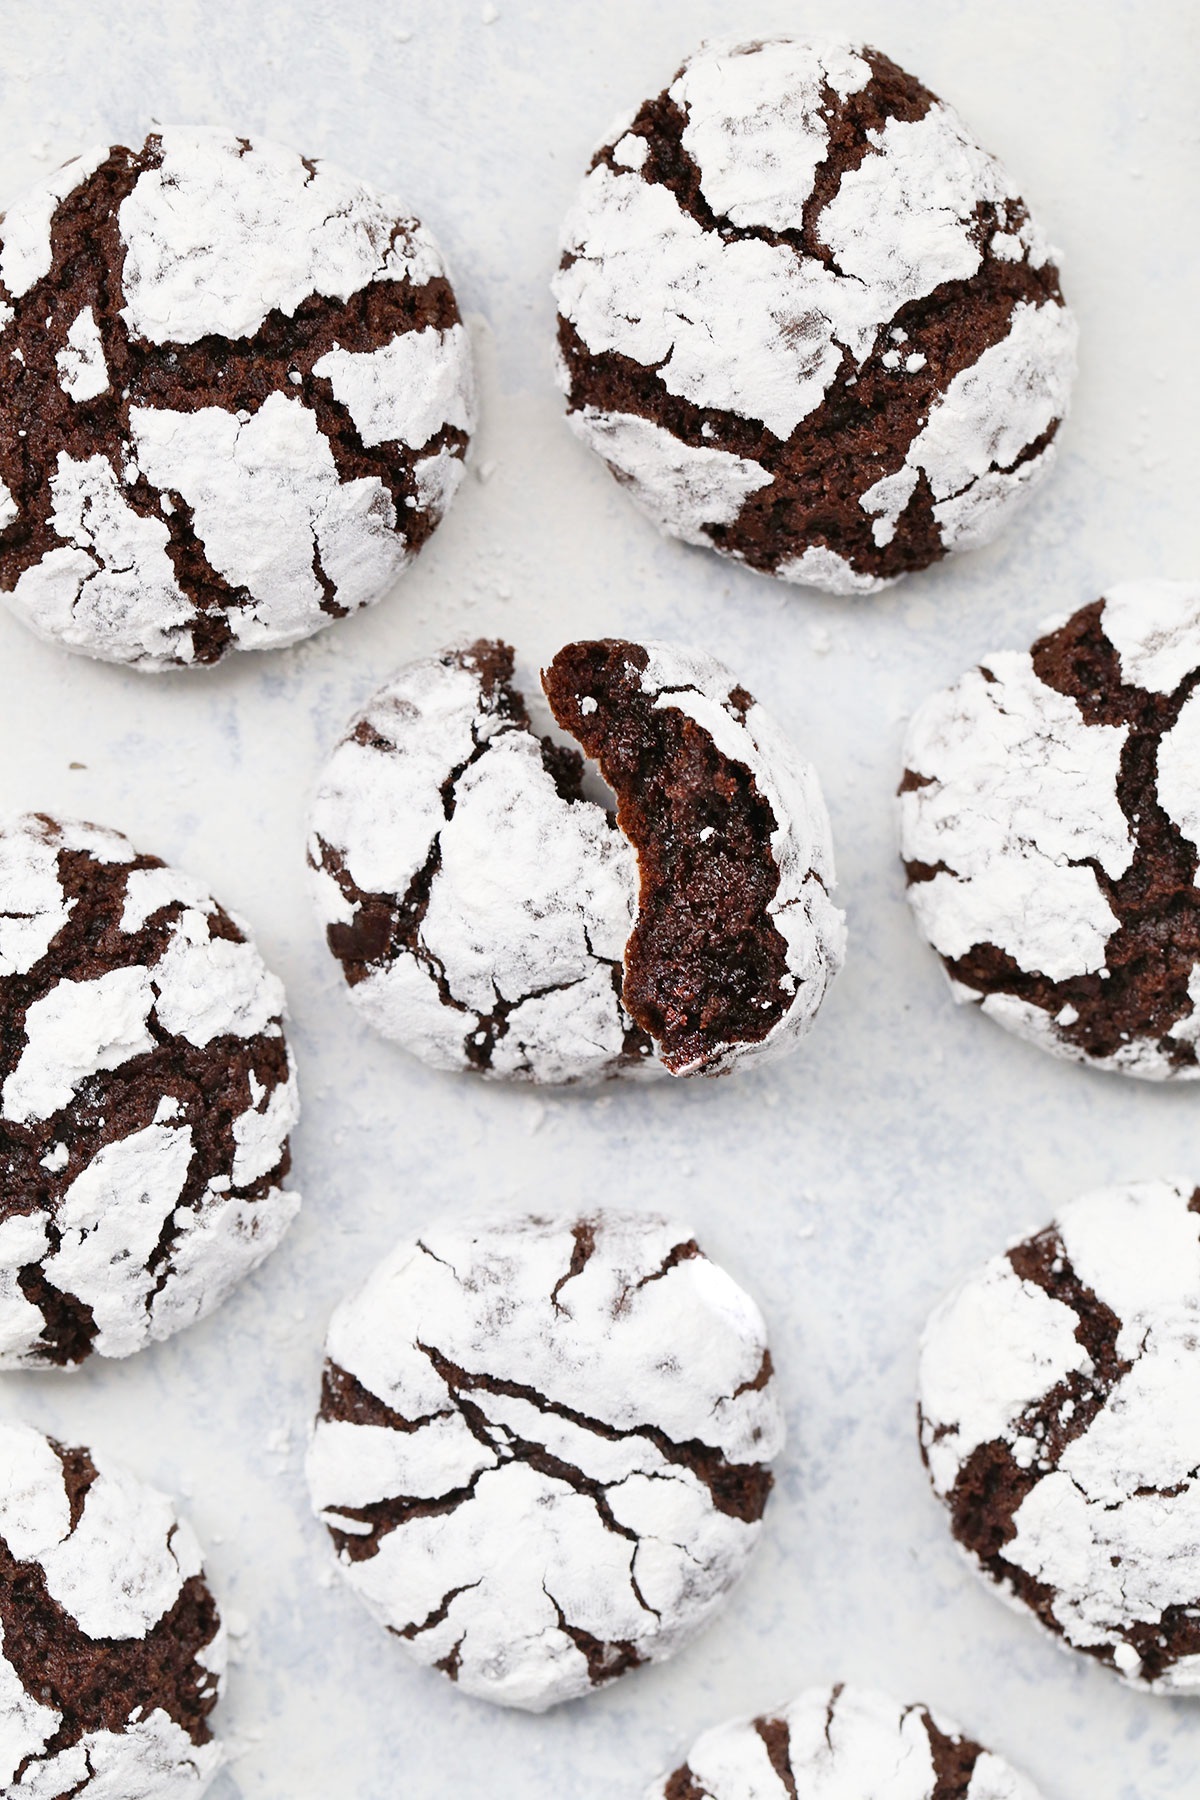 Overhead view of gluten-free chocolate crinkle cookies on a white background